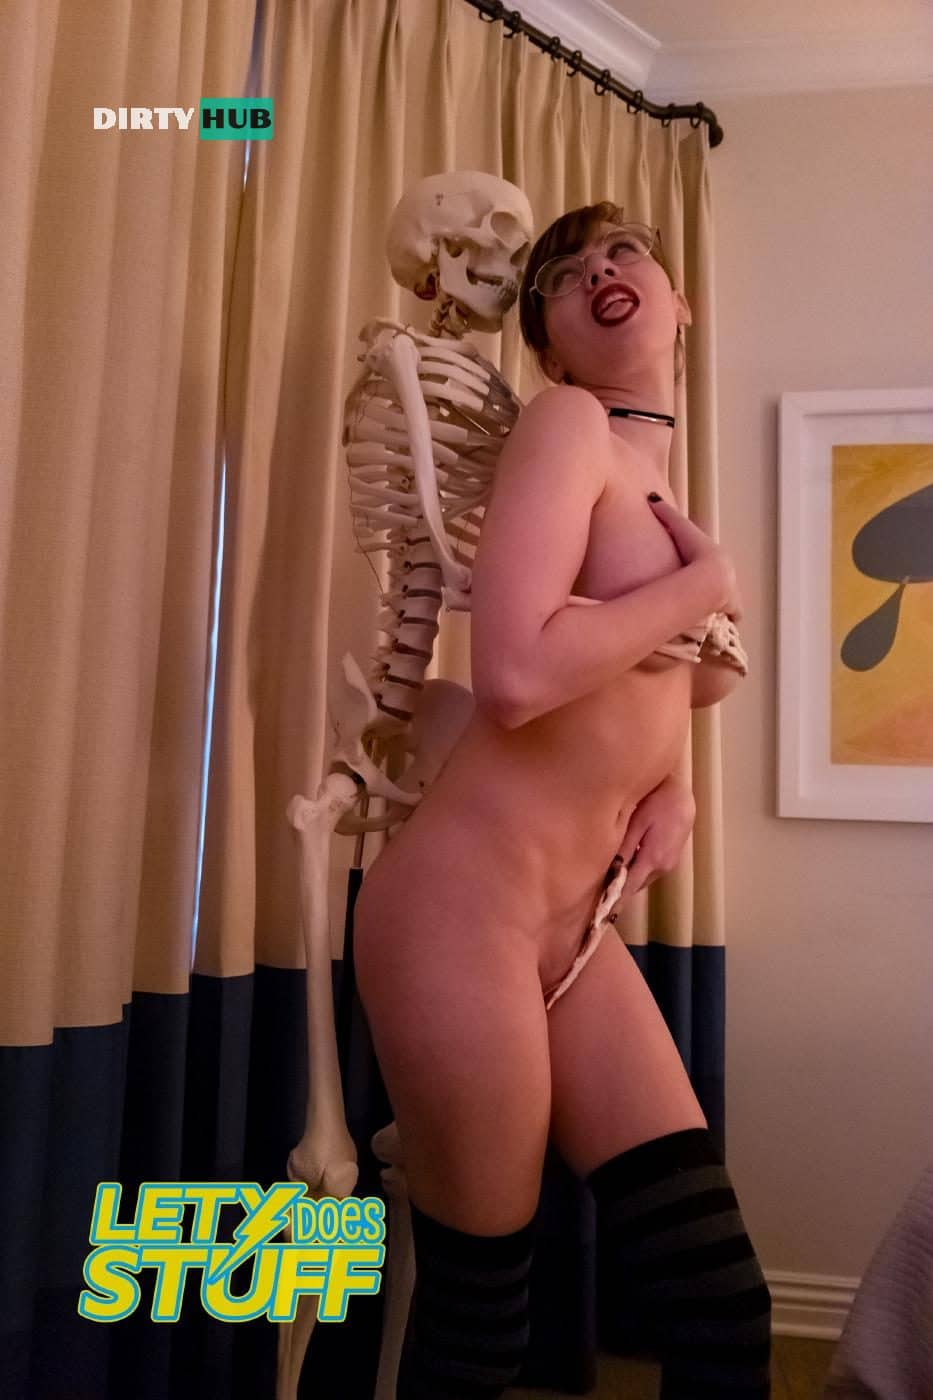 Lety Does Stuff Nude, Dirtyhub